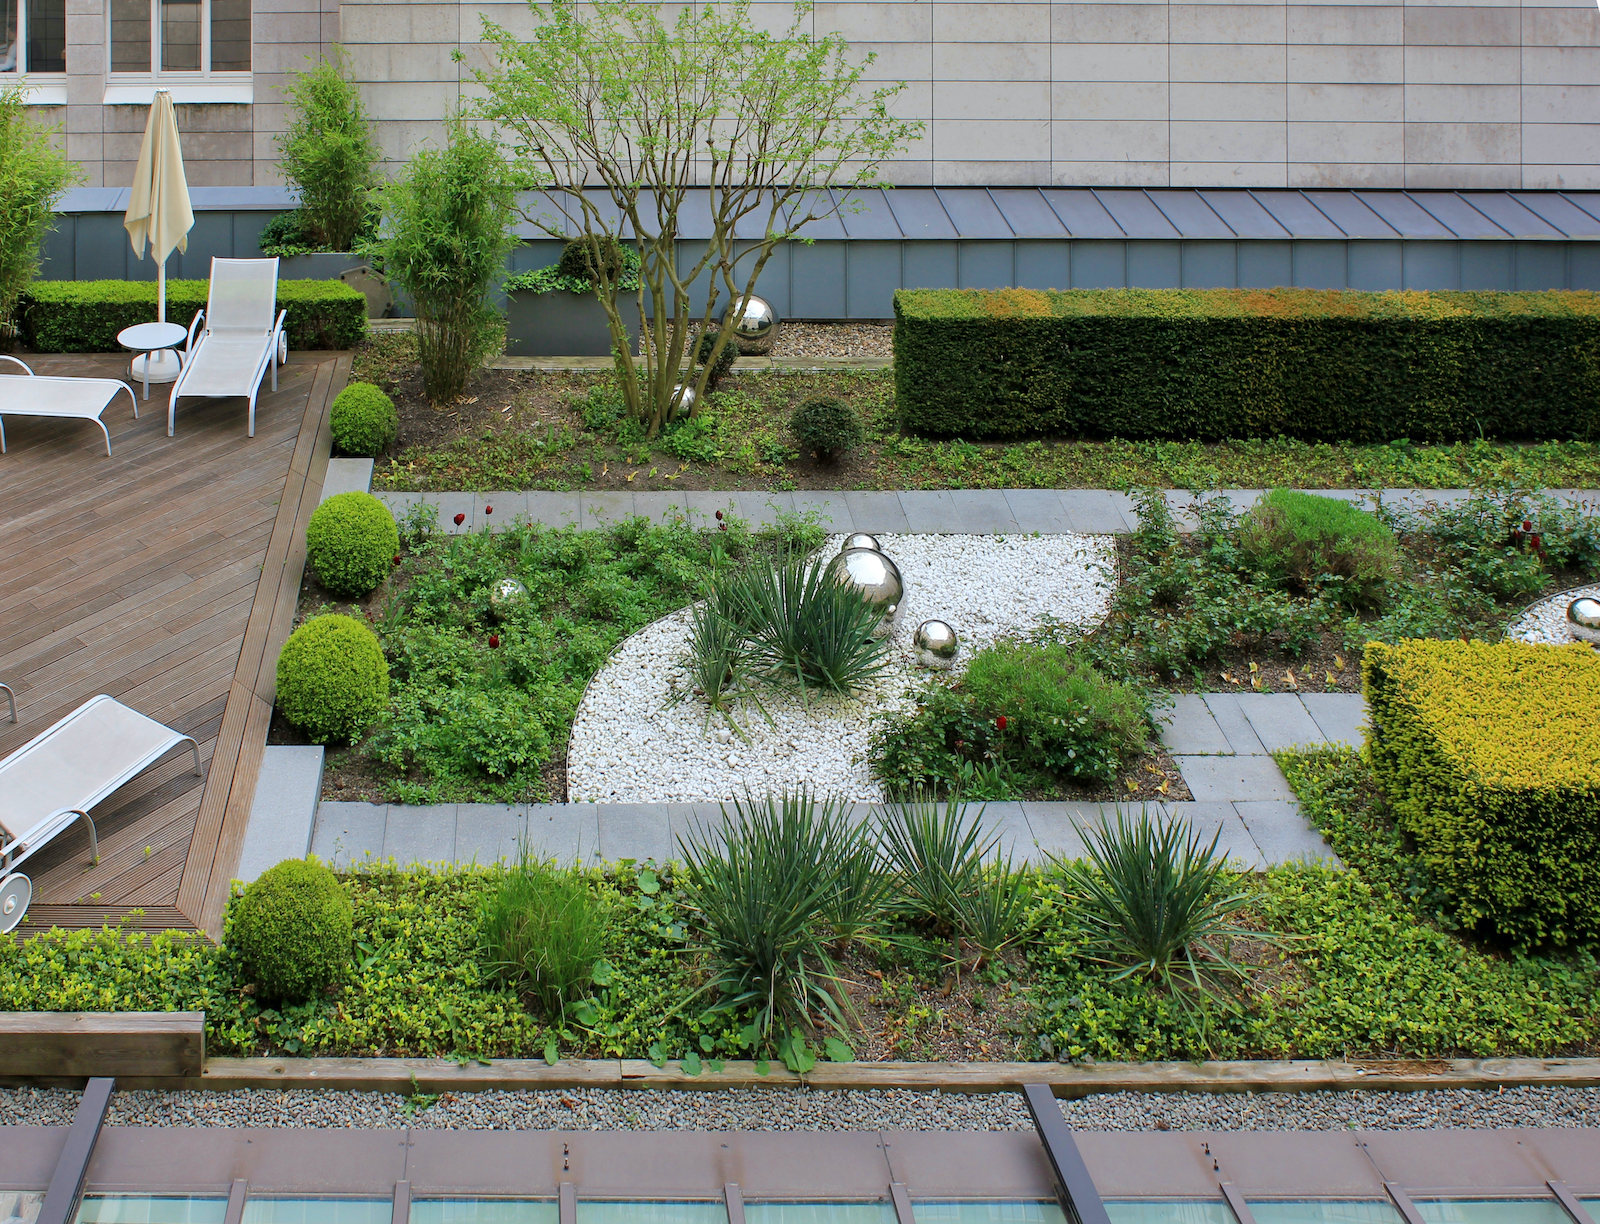 Roof garden with green plants and silver which balls and wooden terrace with rest chairs